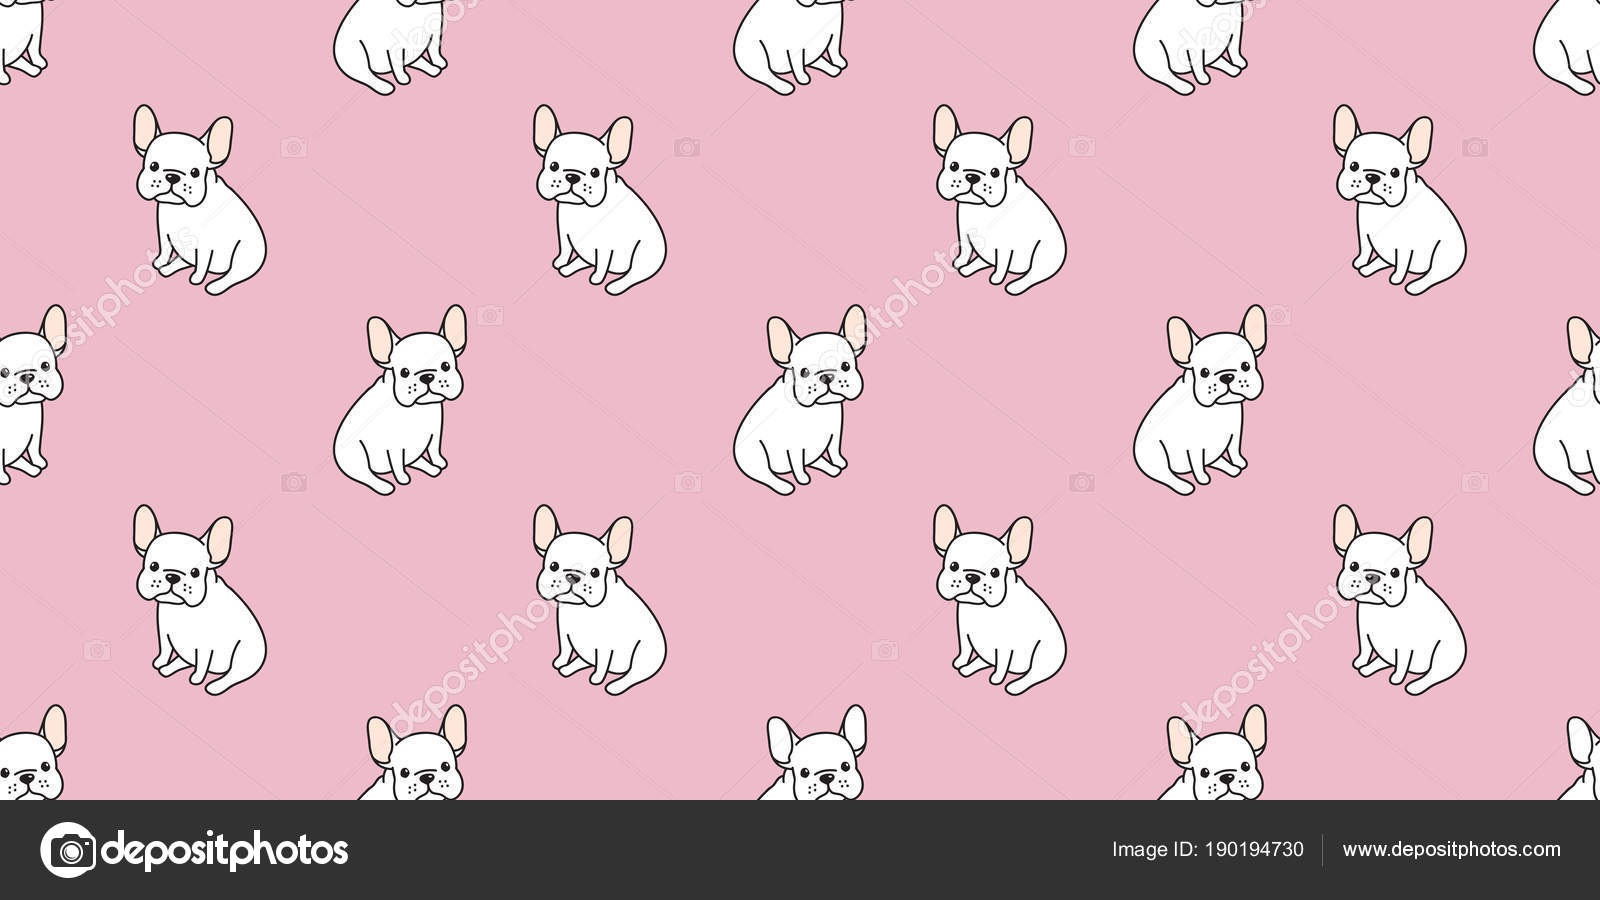 Dog Seamless Pattern French Bulldog Pug Sit Isolated Wallpaper Background Pink Vector By CNuisin